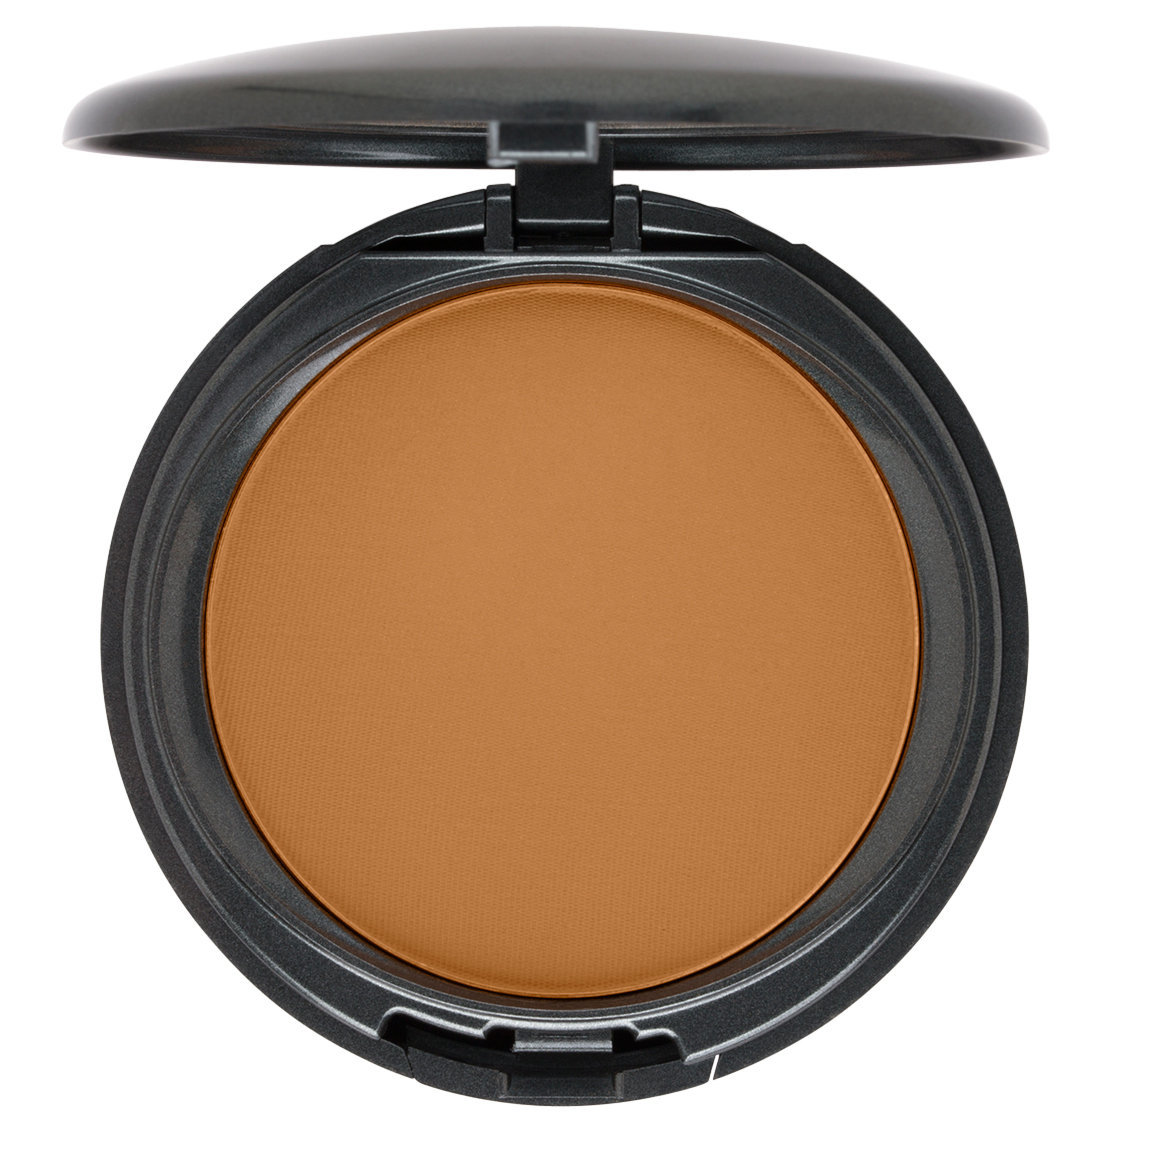 COVER   FX Pressed Mineral Foundation N70 alternative view 1 - product swatch.